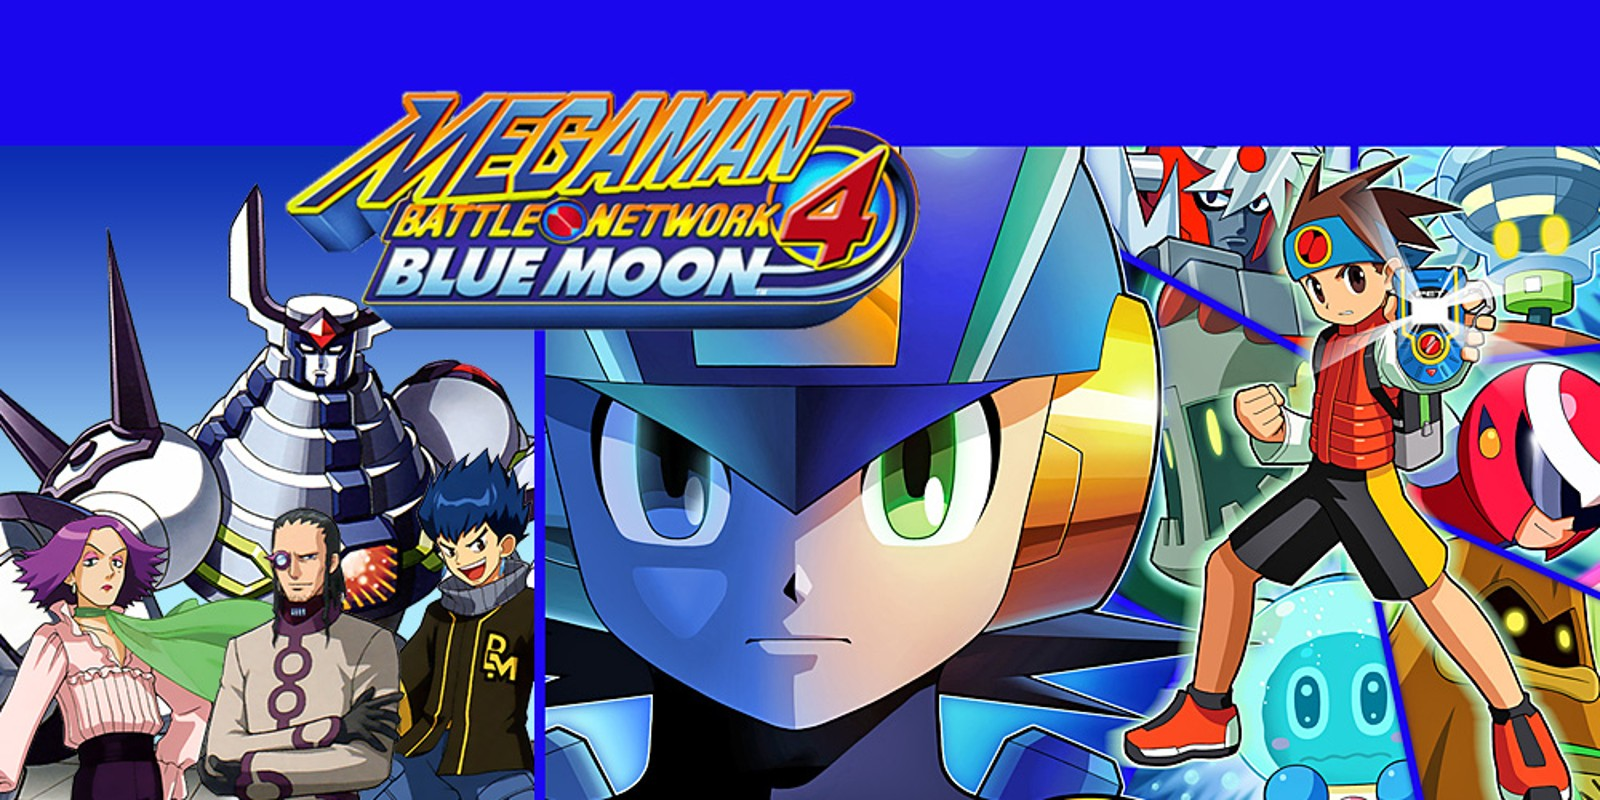 Kids Animal Wallpaper Mega Man Battle Network 4 Blue Moon Game Boy Advance